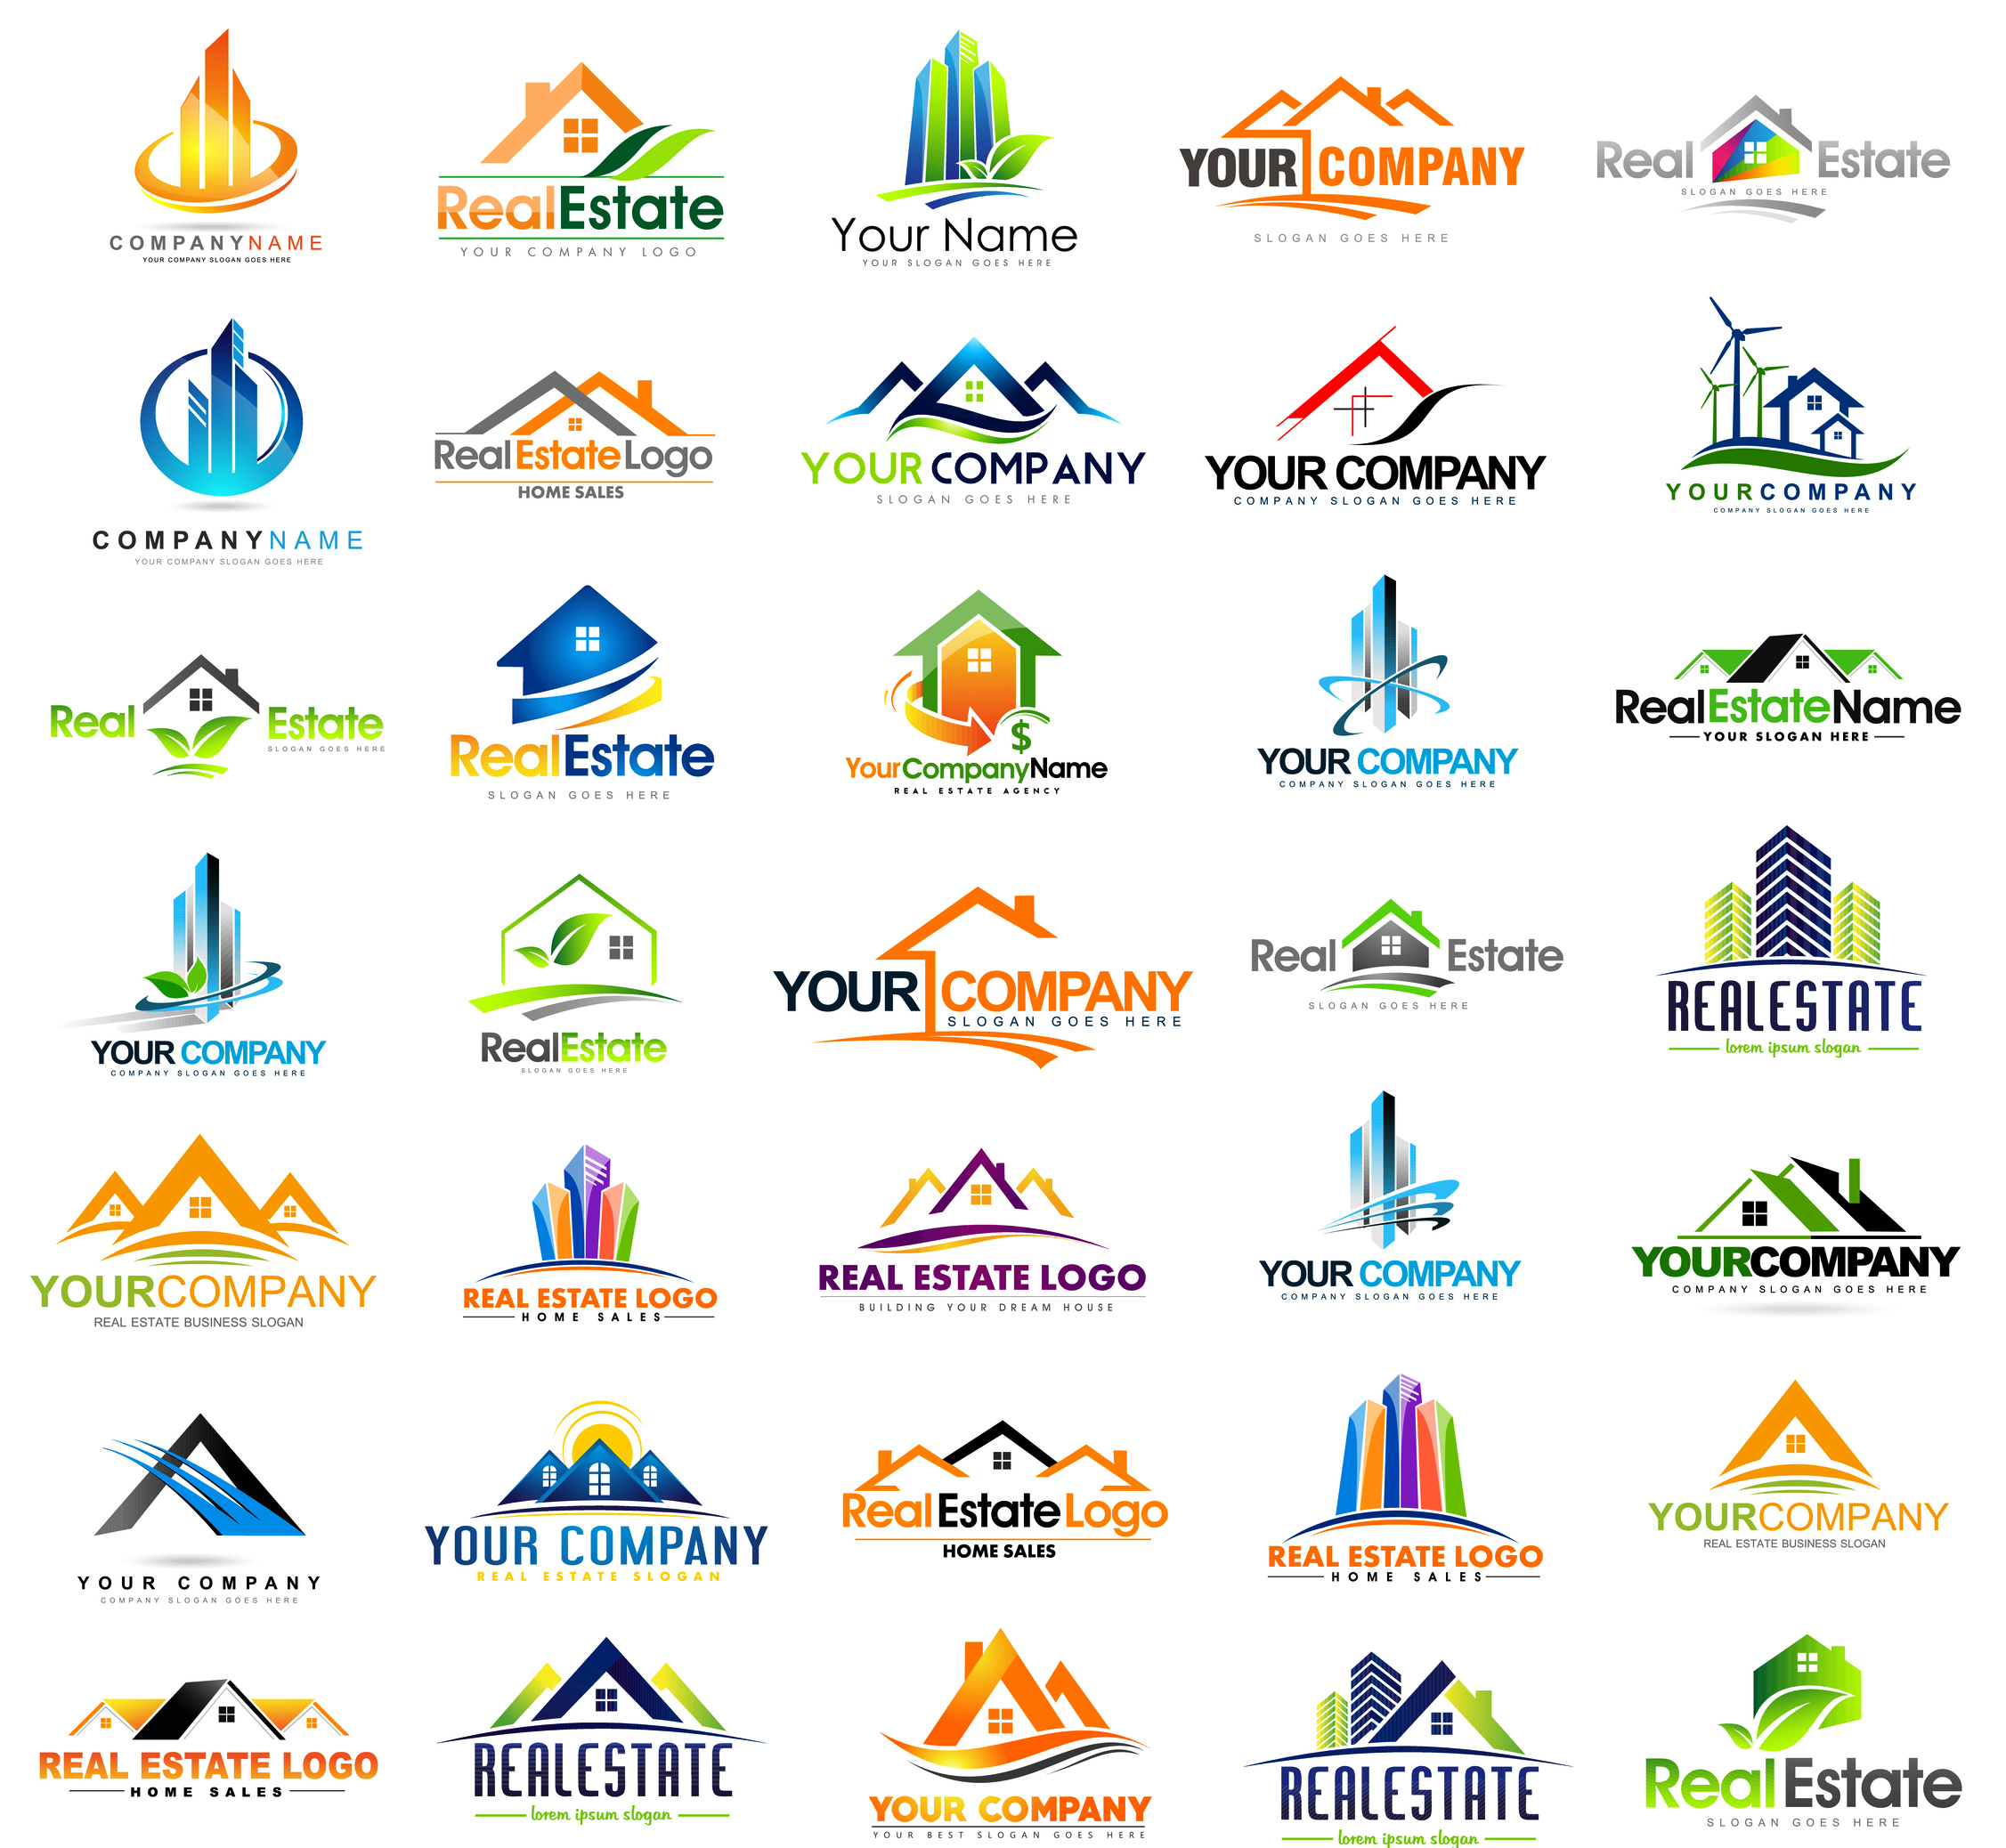 Real Estate Design. House Design. Creative Real Estate Vector Icons collection.